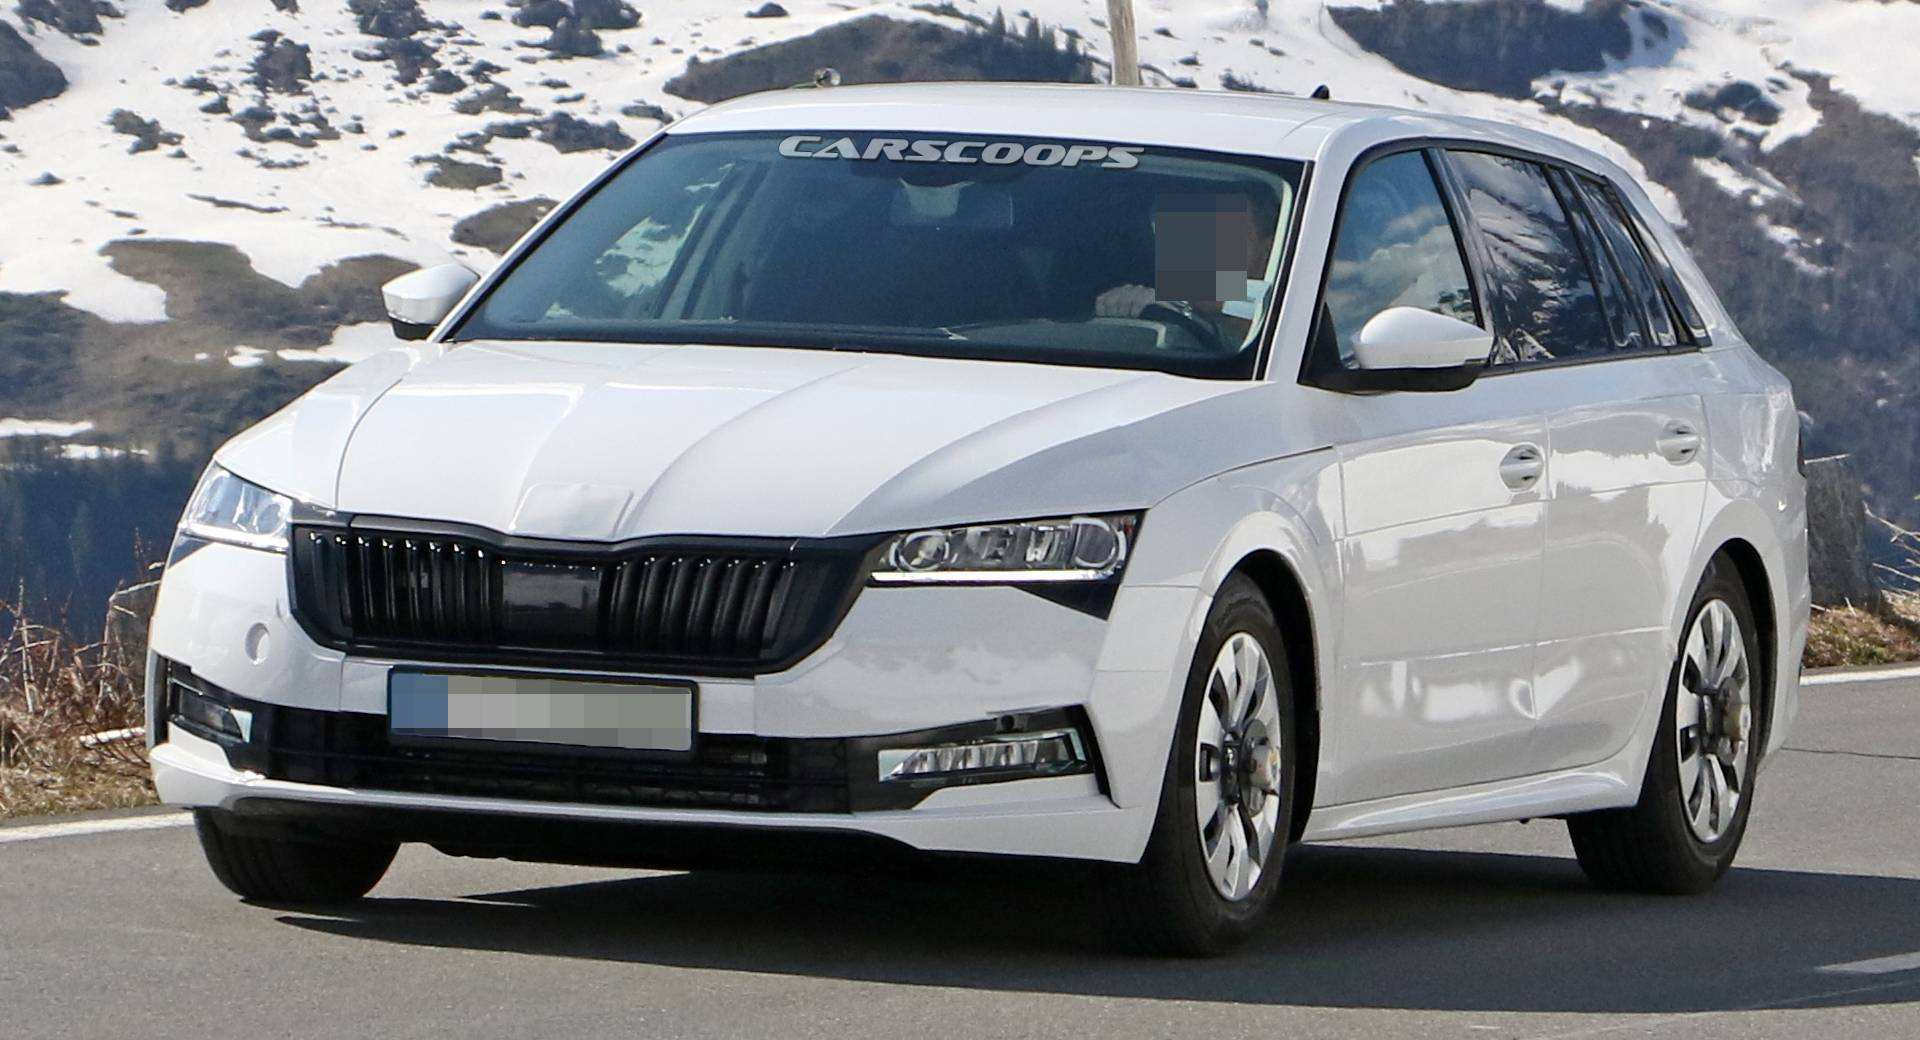 75 All New 2020 The Spy Shots Skoda Superb Pictures